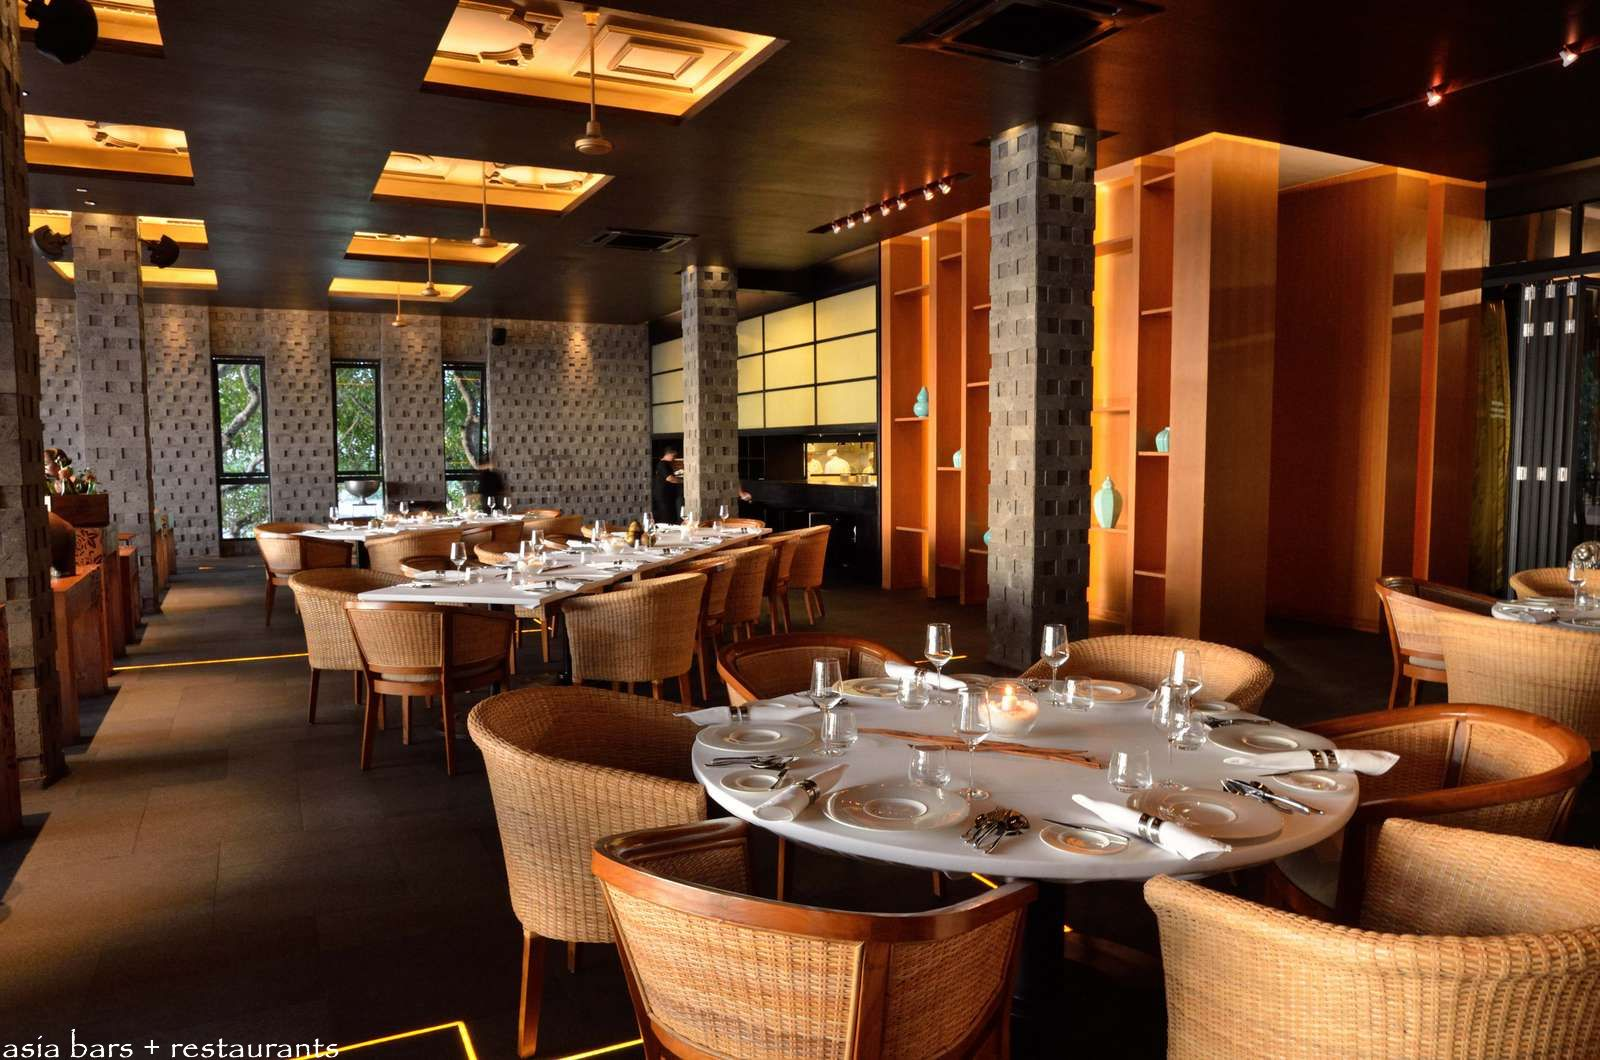 Simple table decoration ideas - Casual restaurant table dining tables on the upper